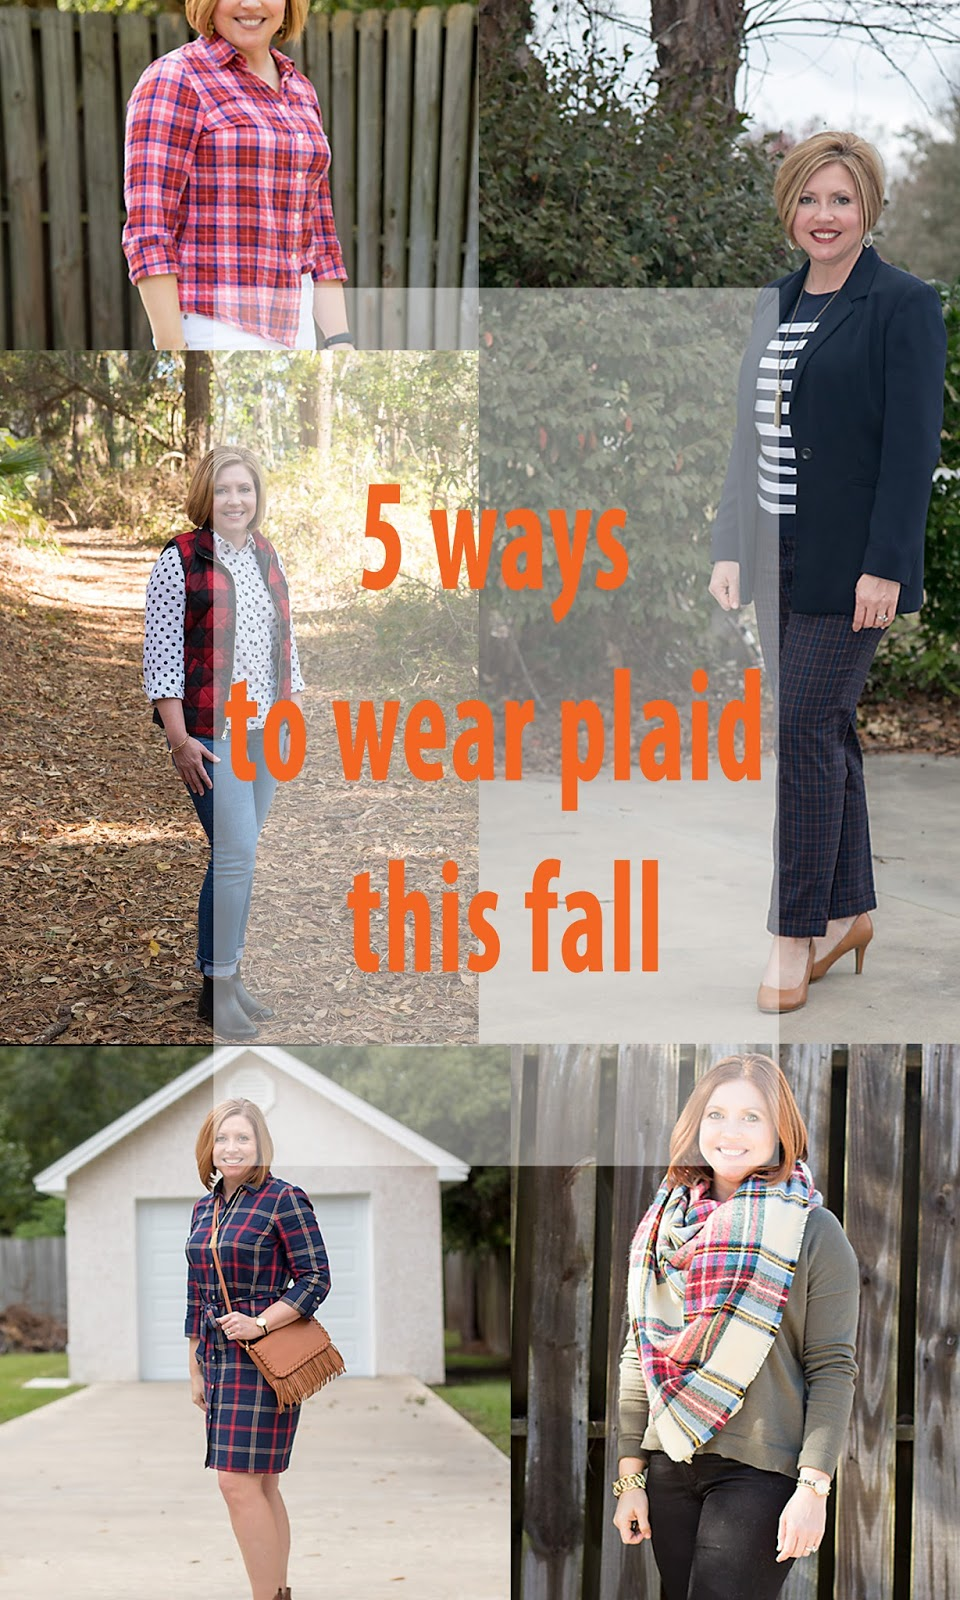 5 Ways to Wear Plaid This Fall